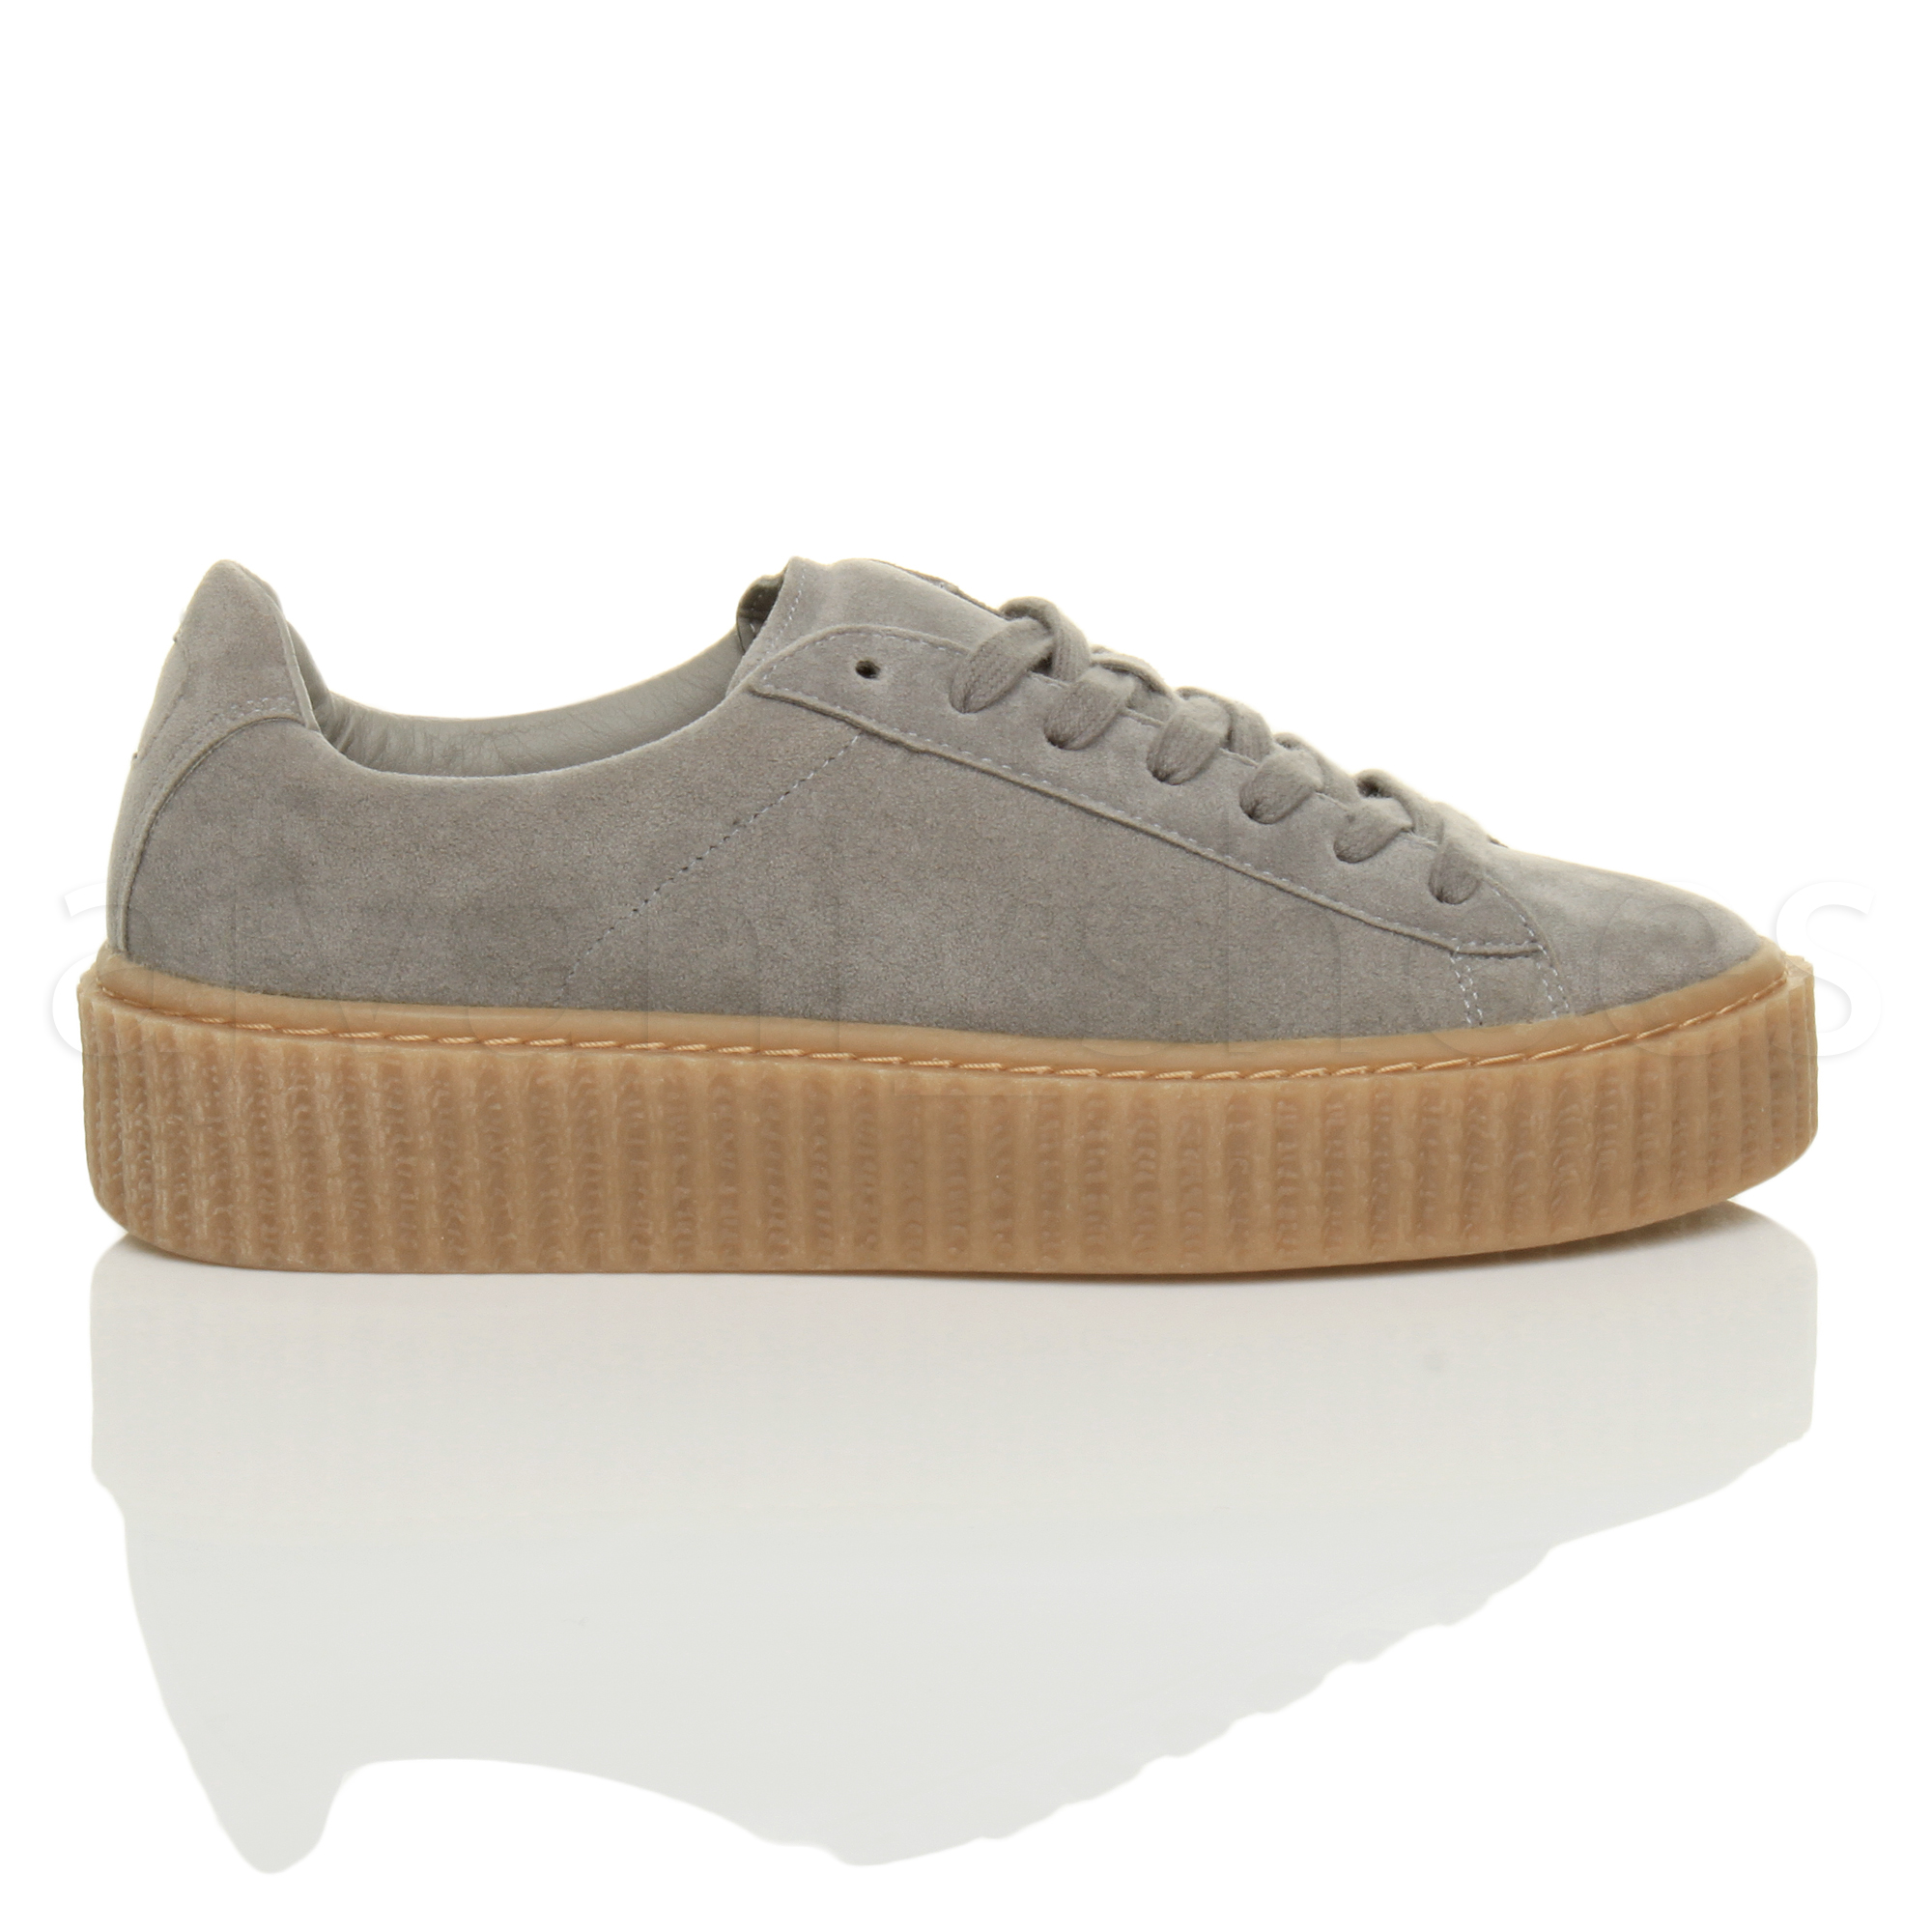 WOMENS-LADIES-PLATFORM-FLATFORM-WEDGE-CHUNKY-LACE-UP-TRAINERS-CREEPERS-SIZE